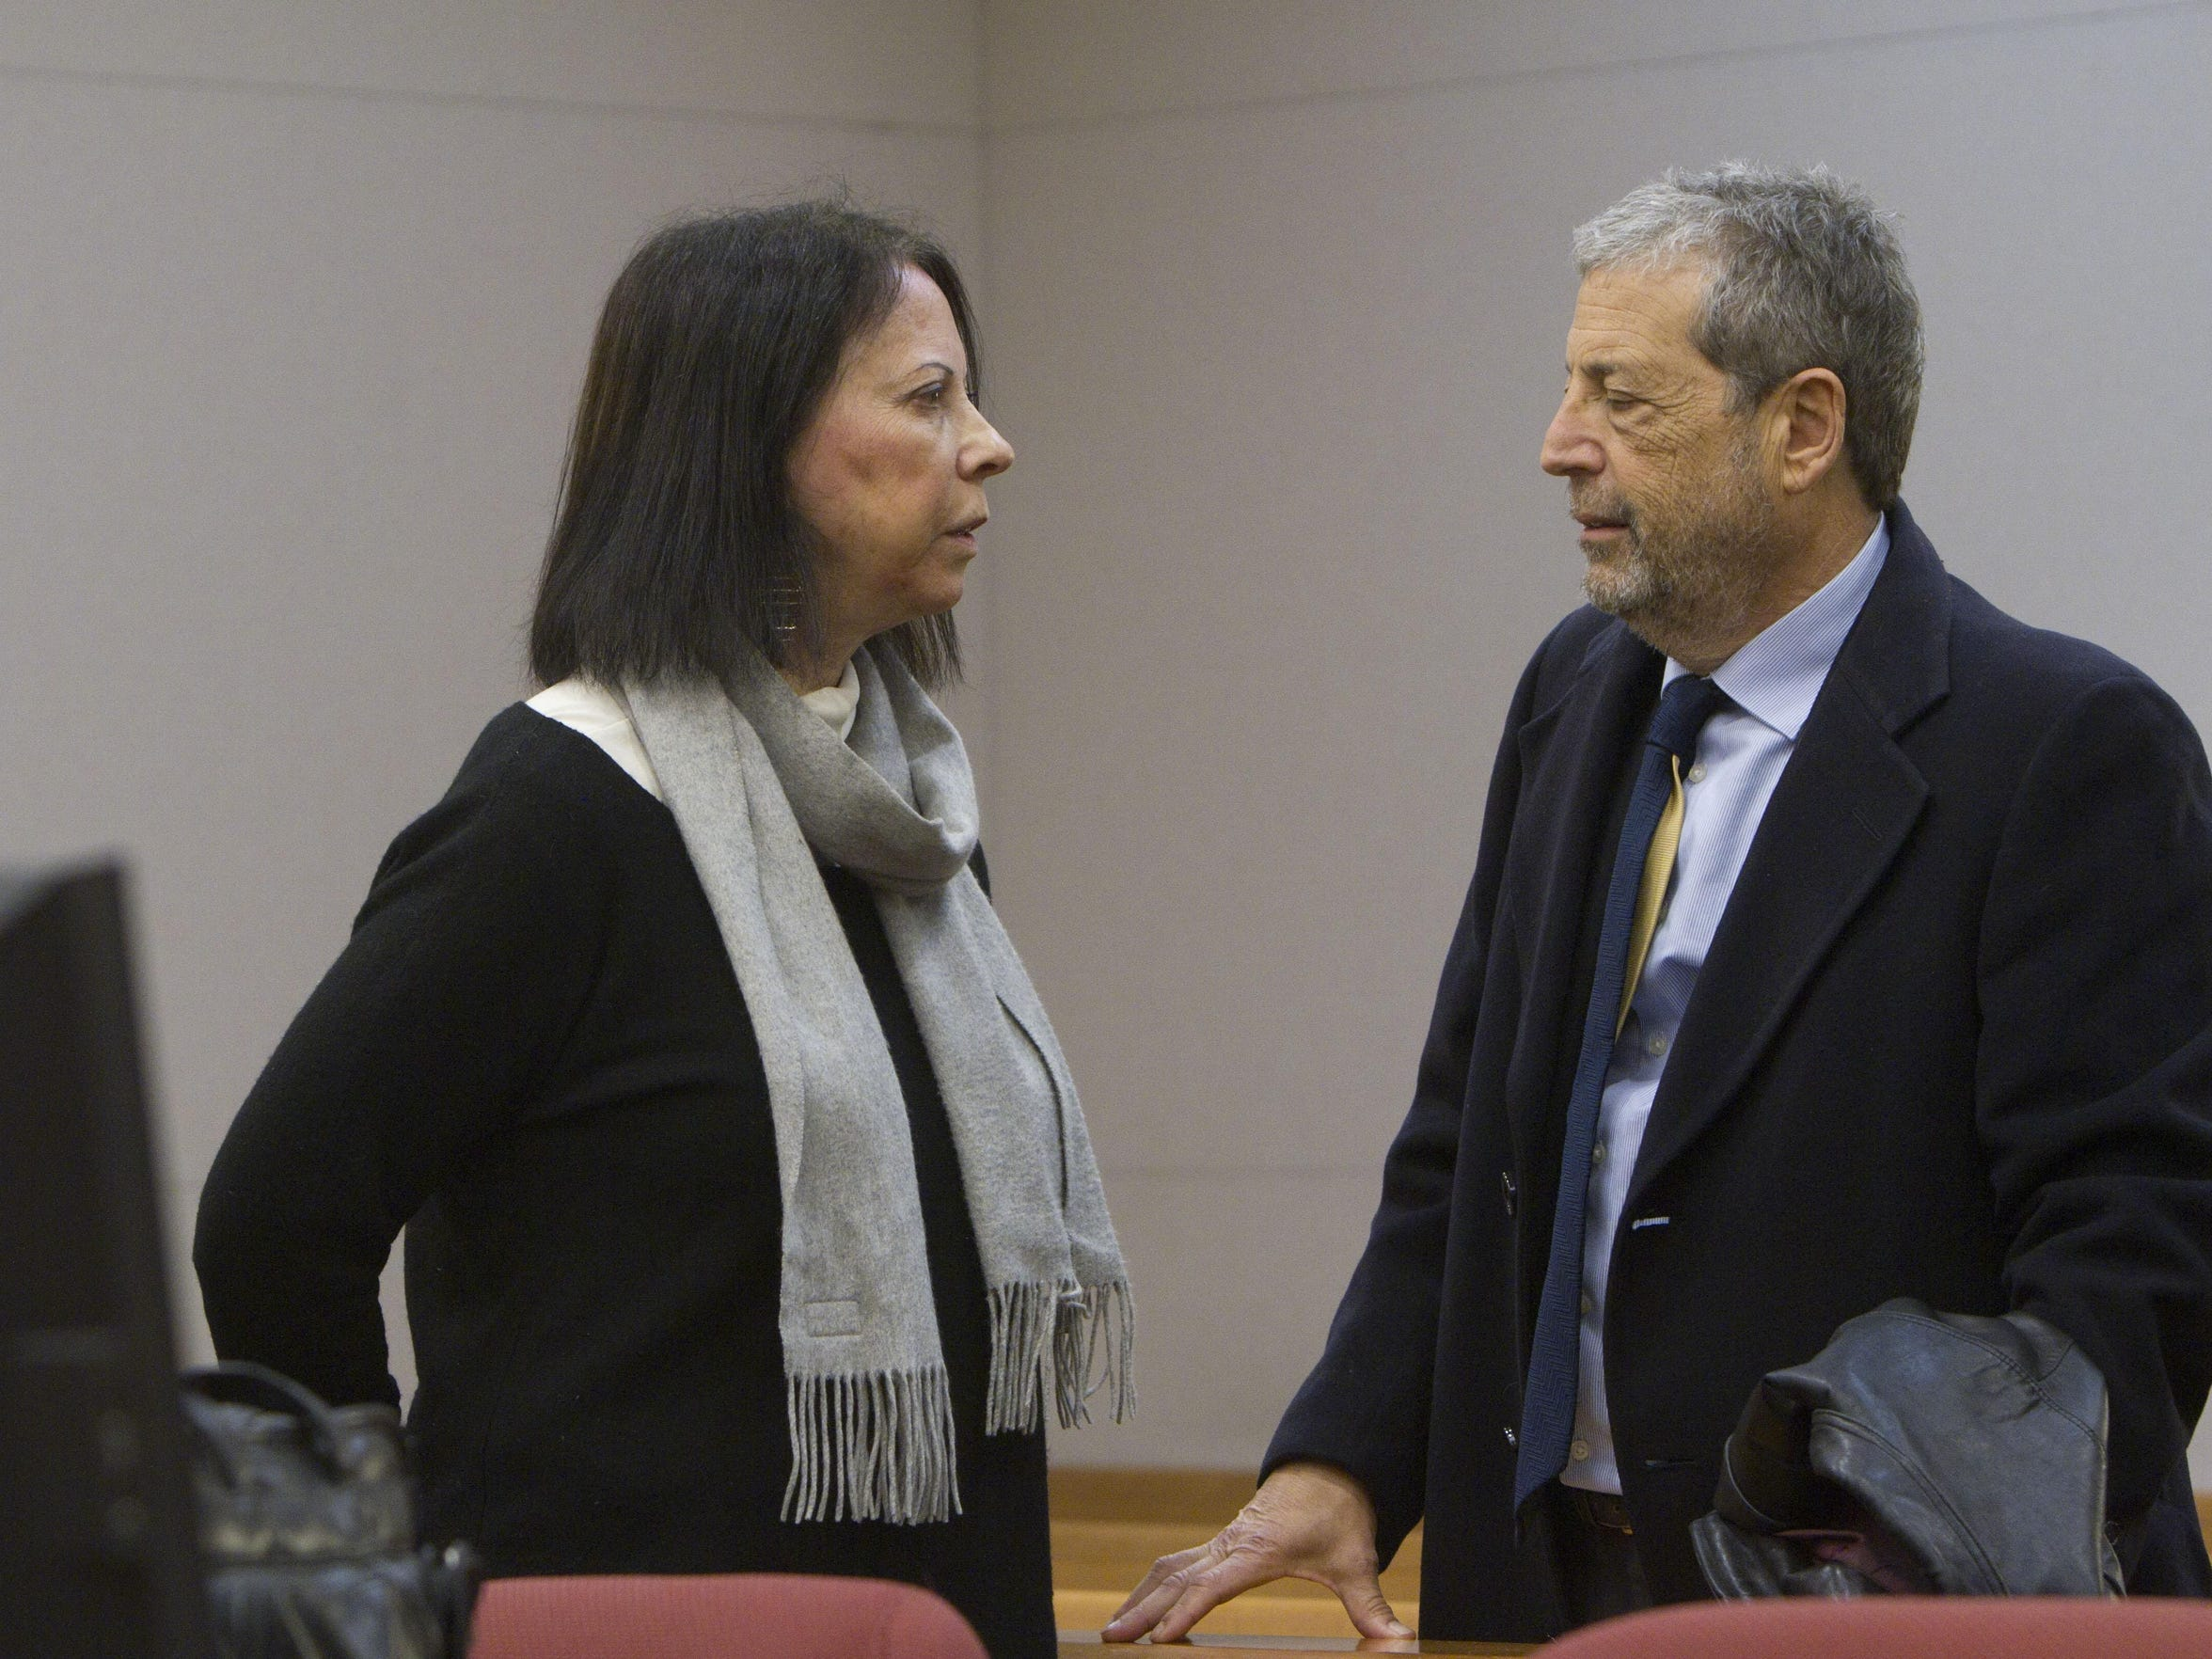 Barbara Lieberman with her husband, David, in state